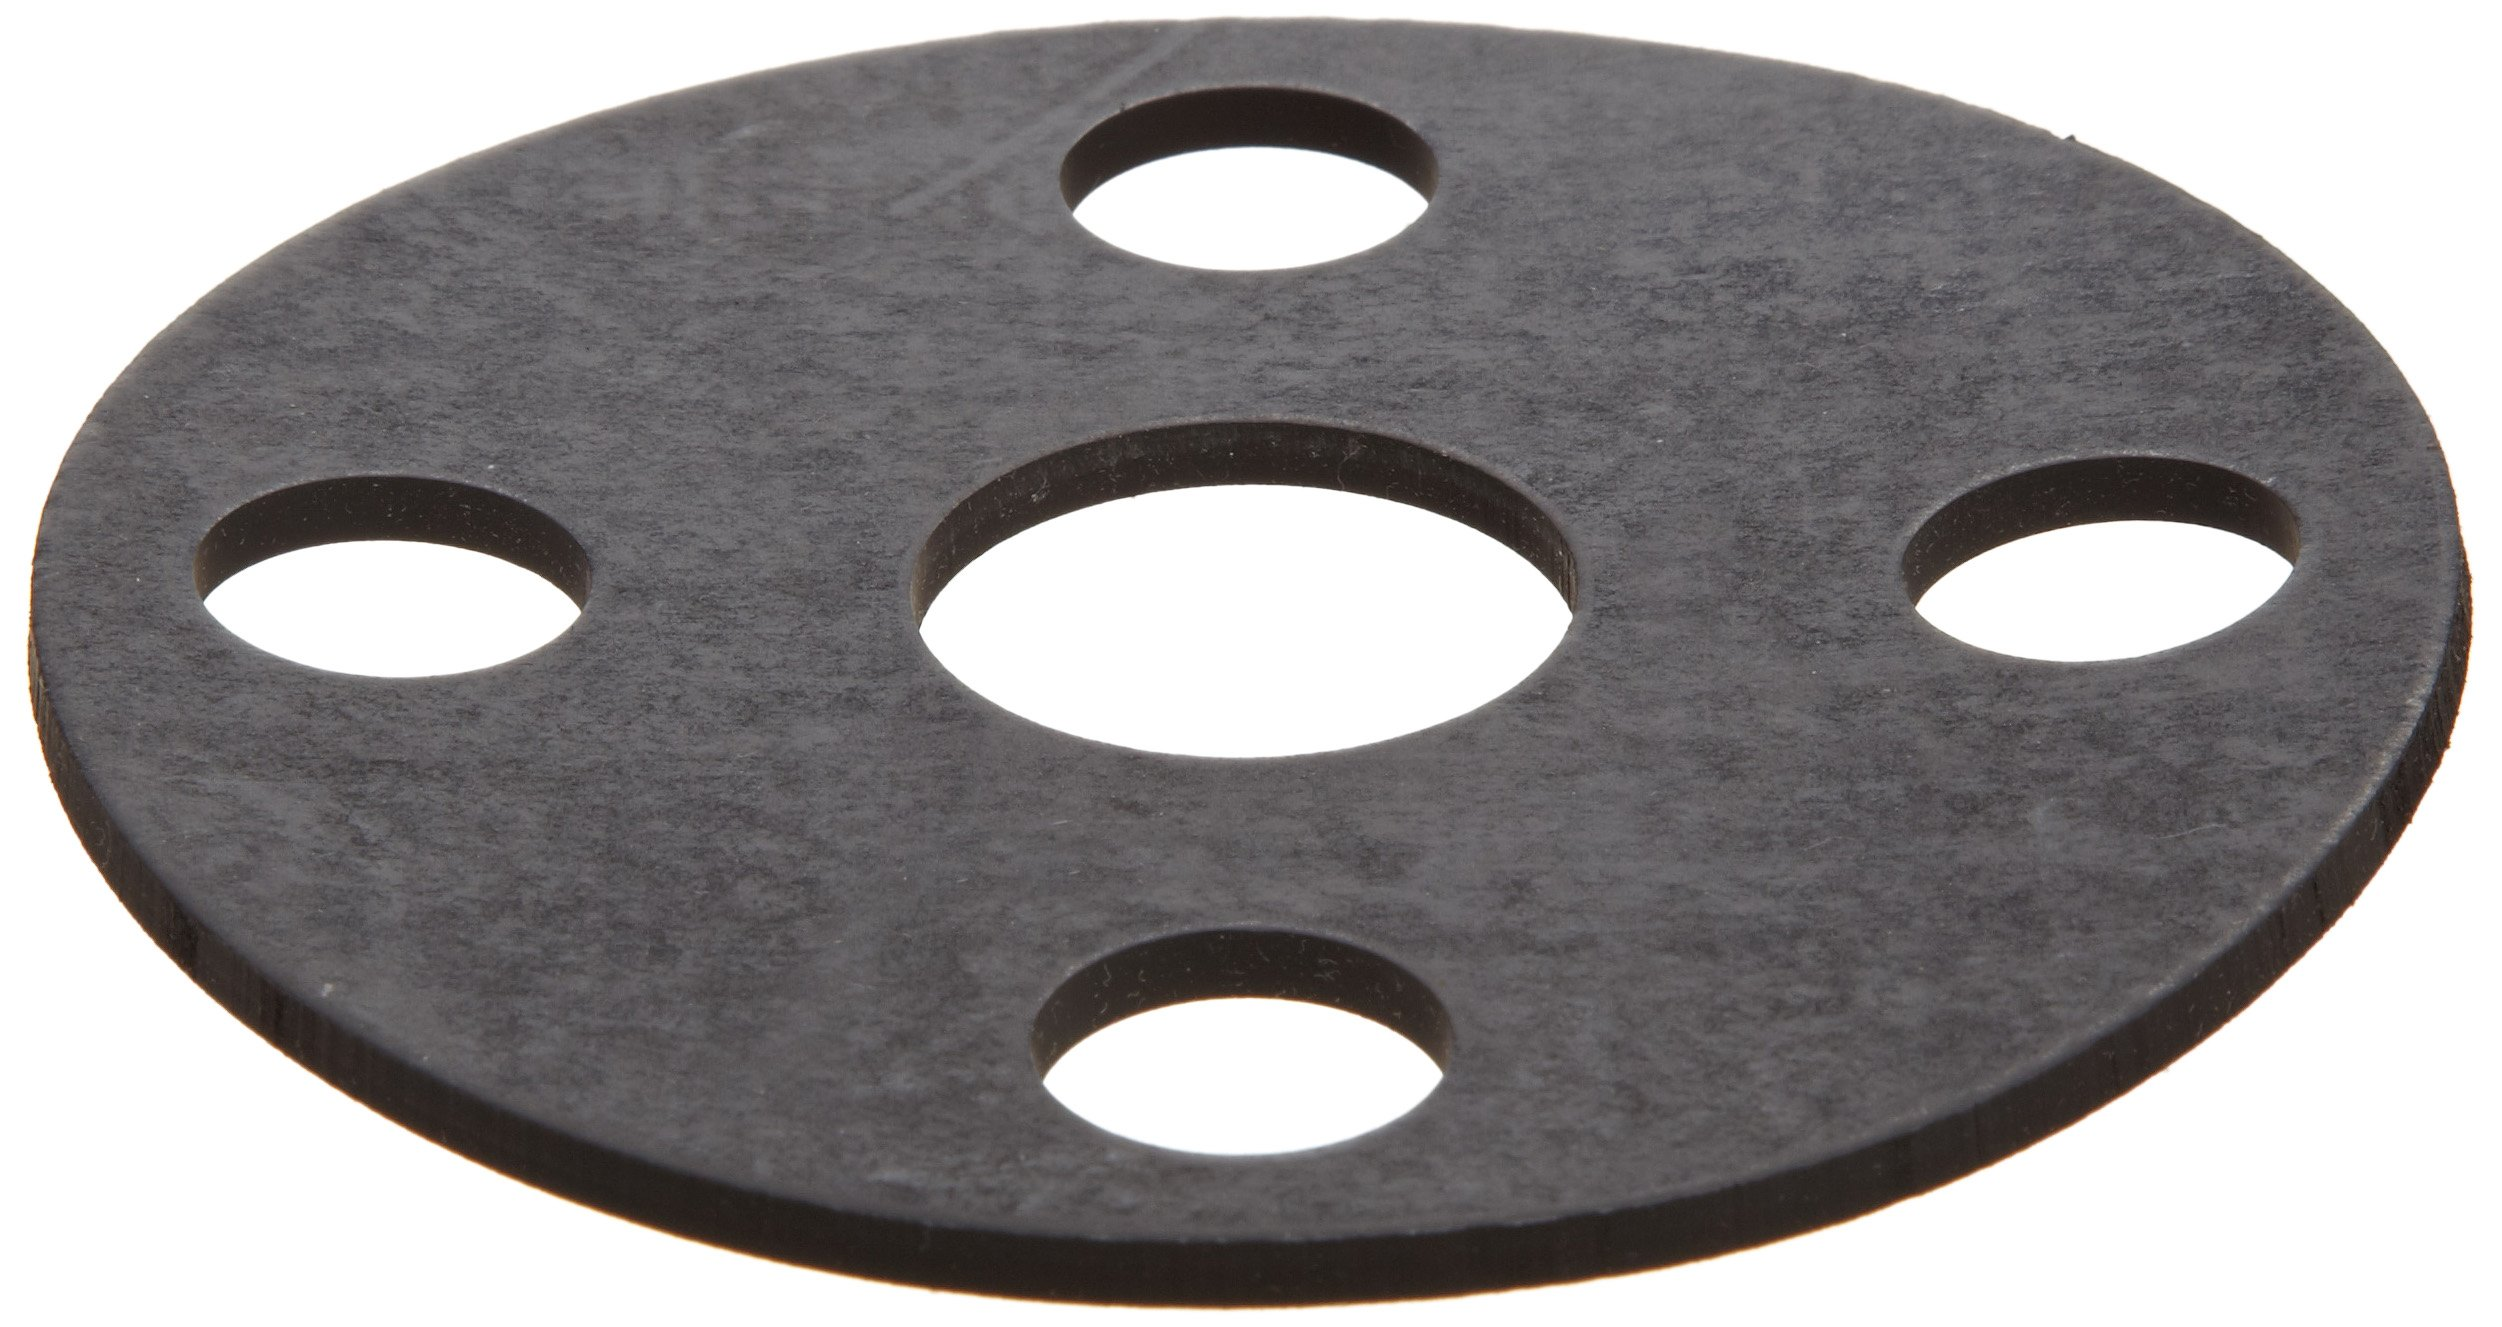 Viton Fluoroelastomer Flange Gasket, Full Face, Black, Fits Class 150 Flange, 1/8'' Thick, 2-1/2'' Pipe Size, 2-7/8'' ID, 7'' OD (Pack of 1)